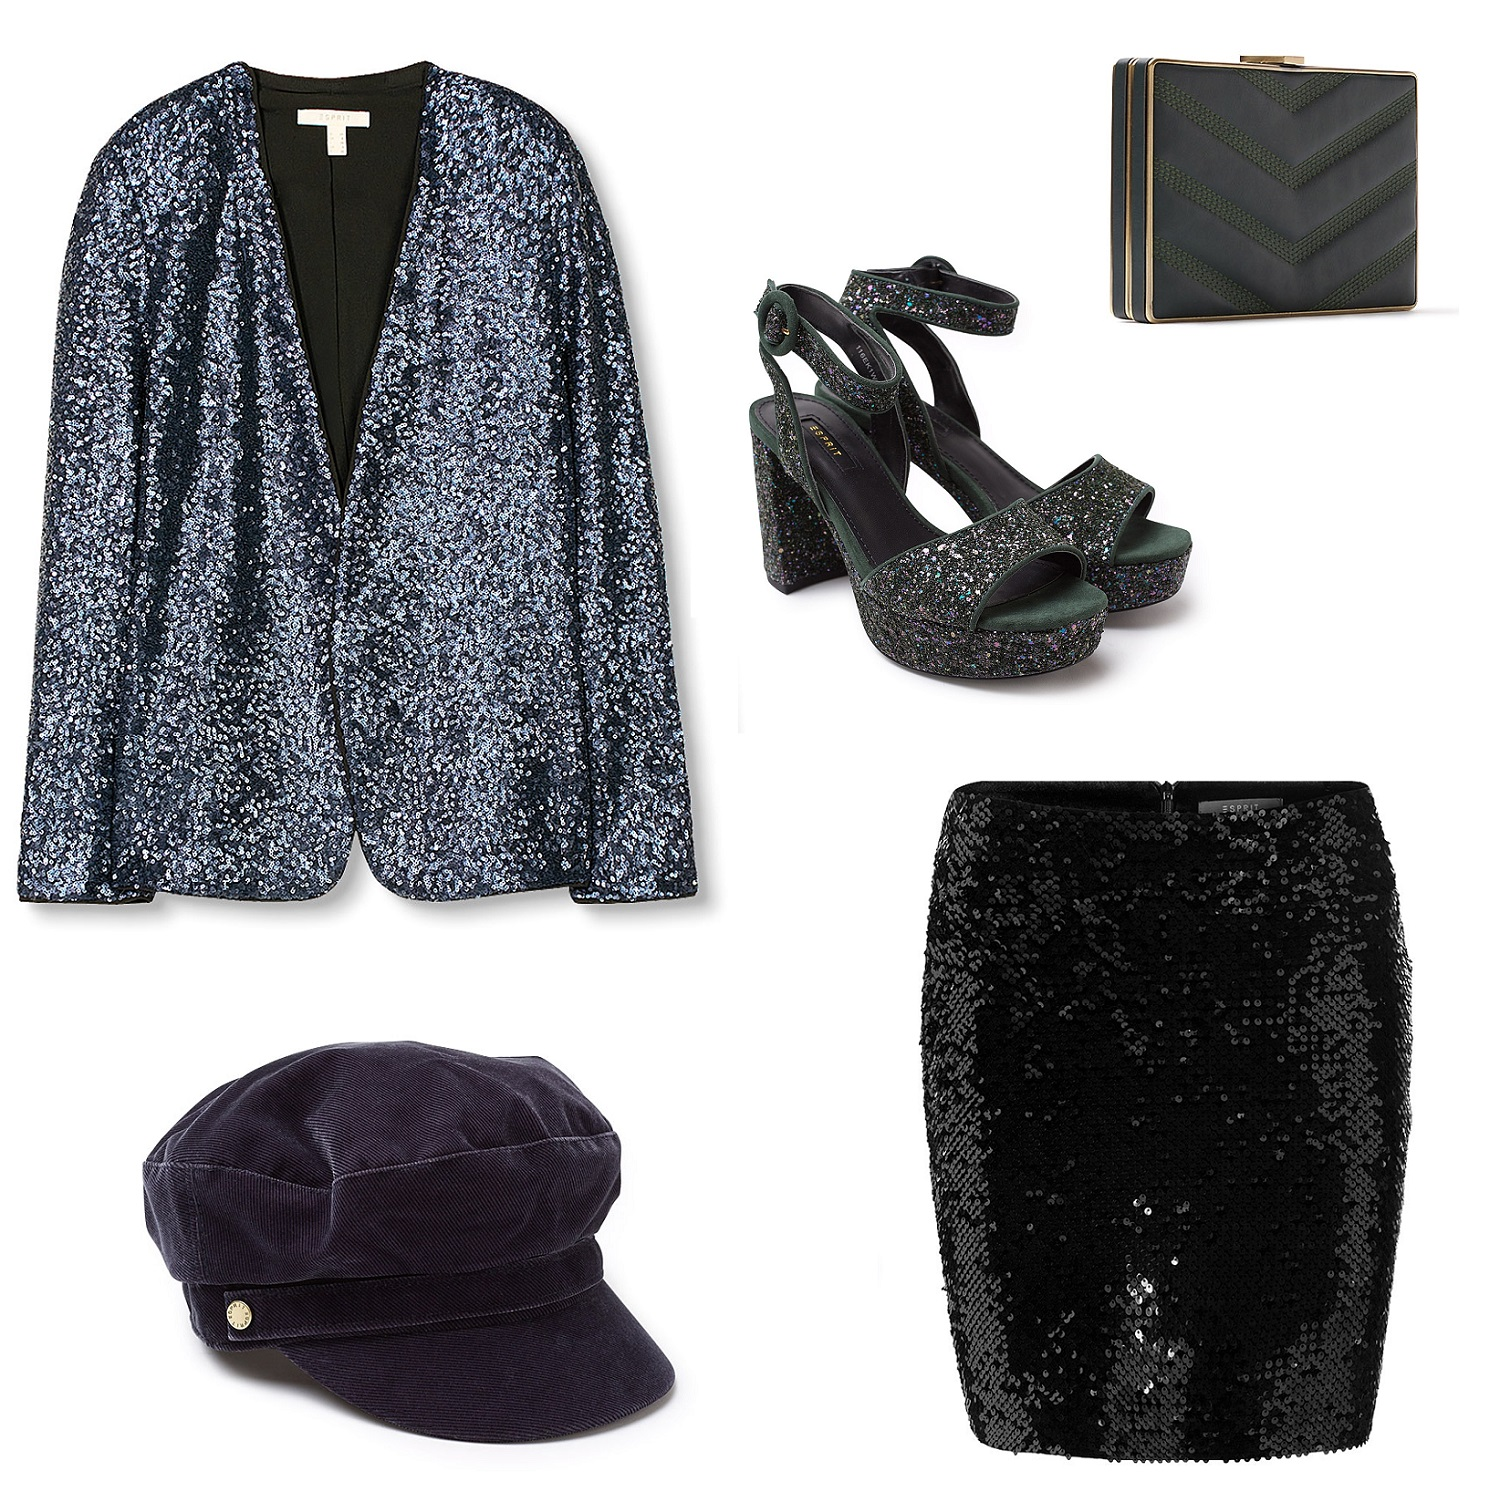 selection-shopping-veste-a-paillettes-sandales-jupe-sequins-casquette-beret